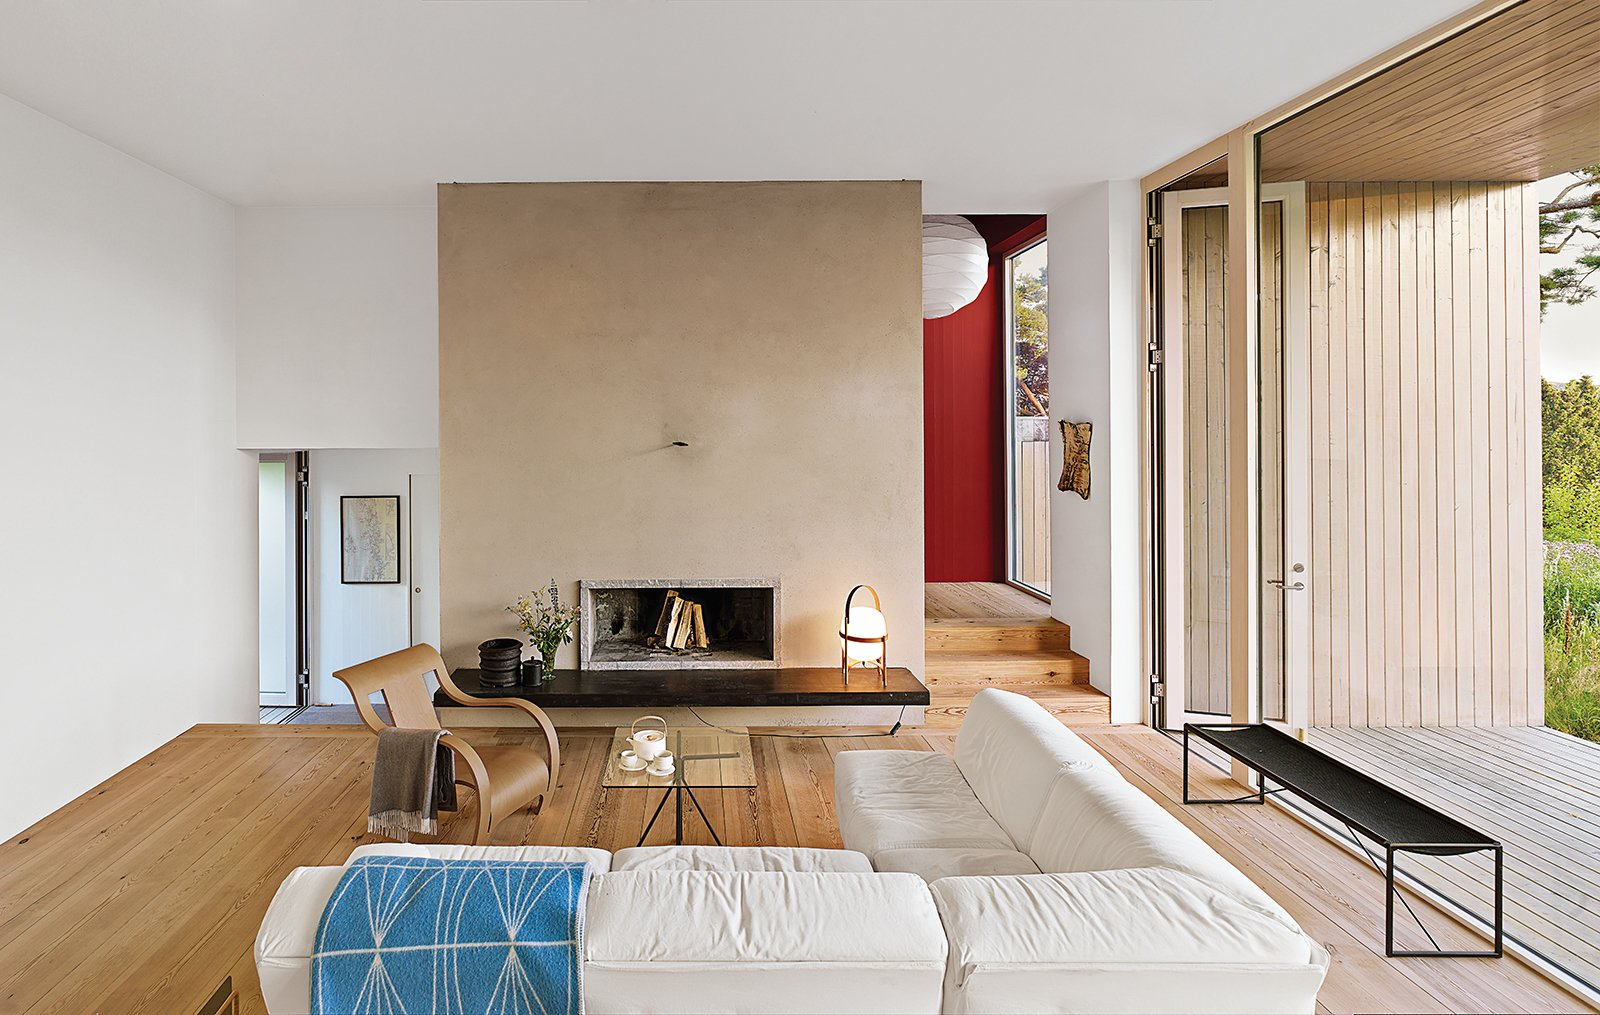 """In the living room, a sofa by Vico Magistretti is next to a plywood armchair by Gerald Summers. The coffee table is by Enzo Mari; the Cesta lantern is by Miguel Milá for Santa & Cole. """"It's too expected for us to put Hans Wegner here,"""" Duncanson explains. Tagged: Living Room, Chair, Medium Hardwood Floor, Sofa, Coffee Tables, and Wood Burning Fireplace.  Photo 2 of 8 in A Pine Box Vacation Home in Sweden"""